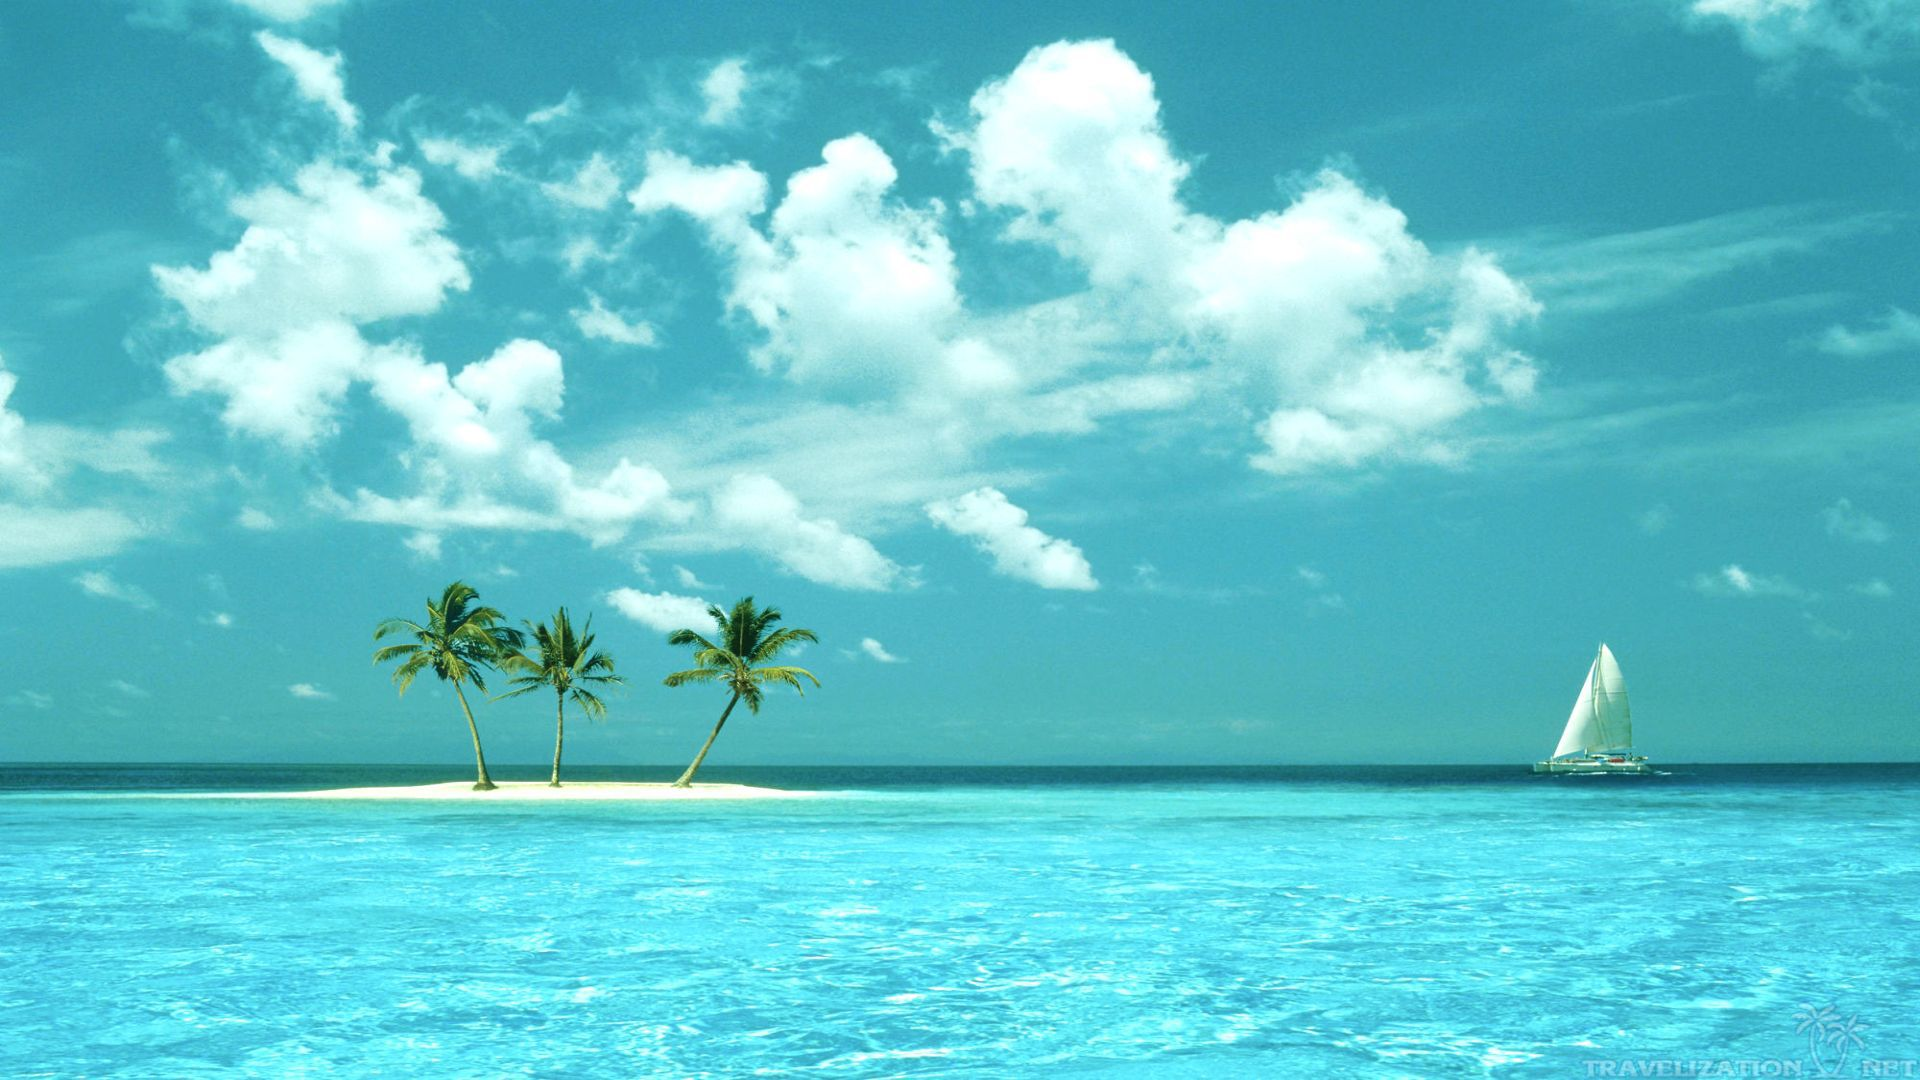 Beautiful Island Pictures For Wallpaper: Tropical Island Paradise Wallpaper